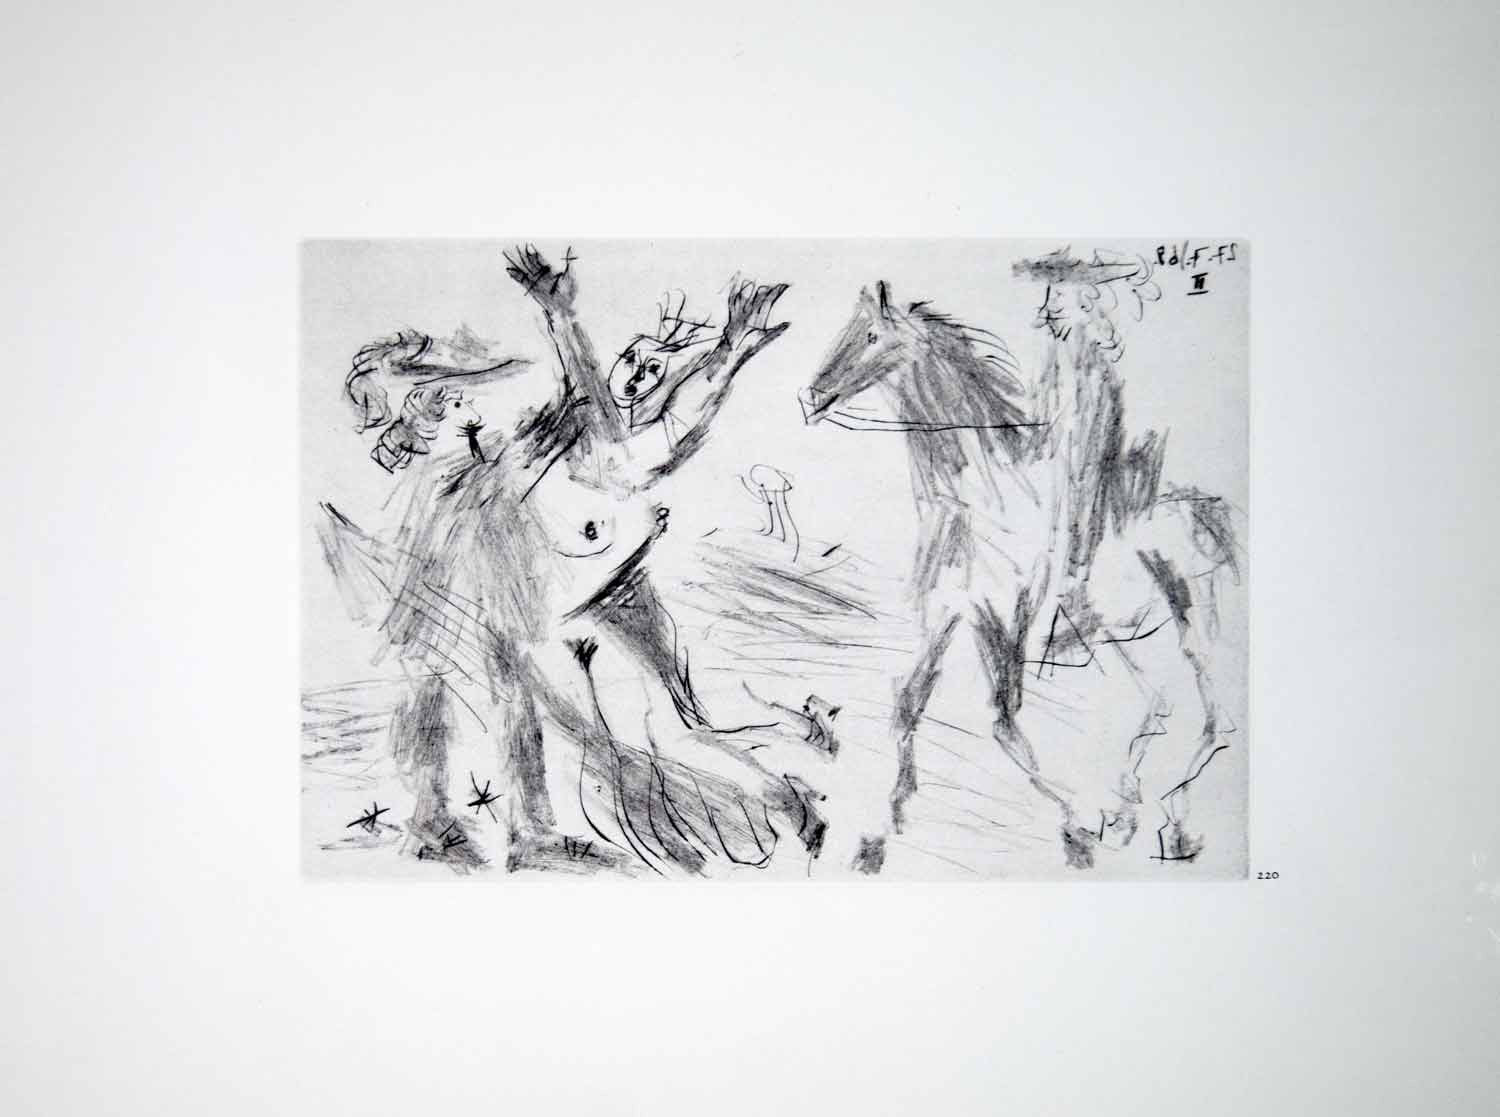 1970 Heliogravure Picasso Art Nude Female Figure Musketeer Horse Dry Point P347B - Period Paper